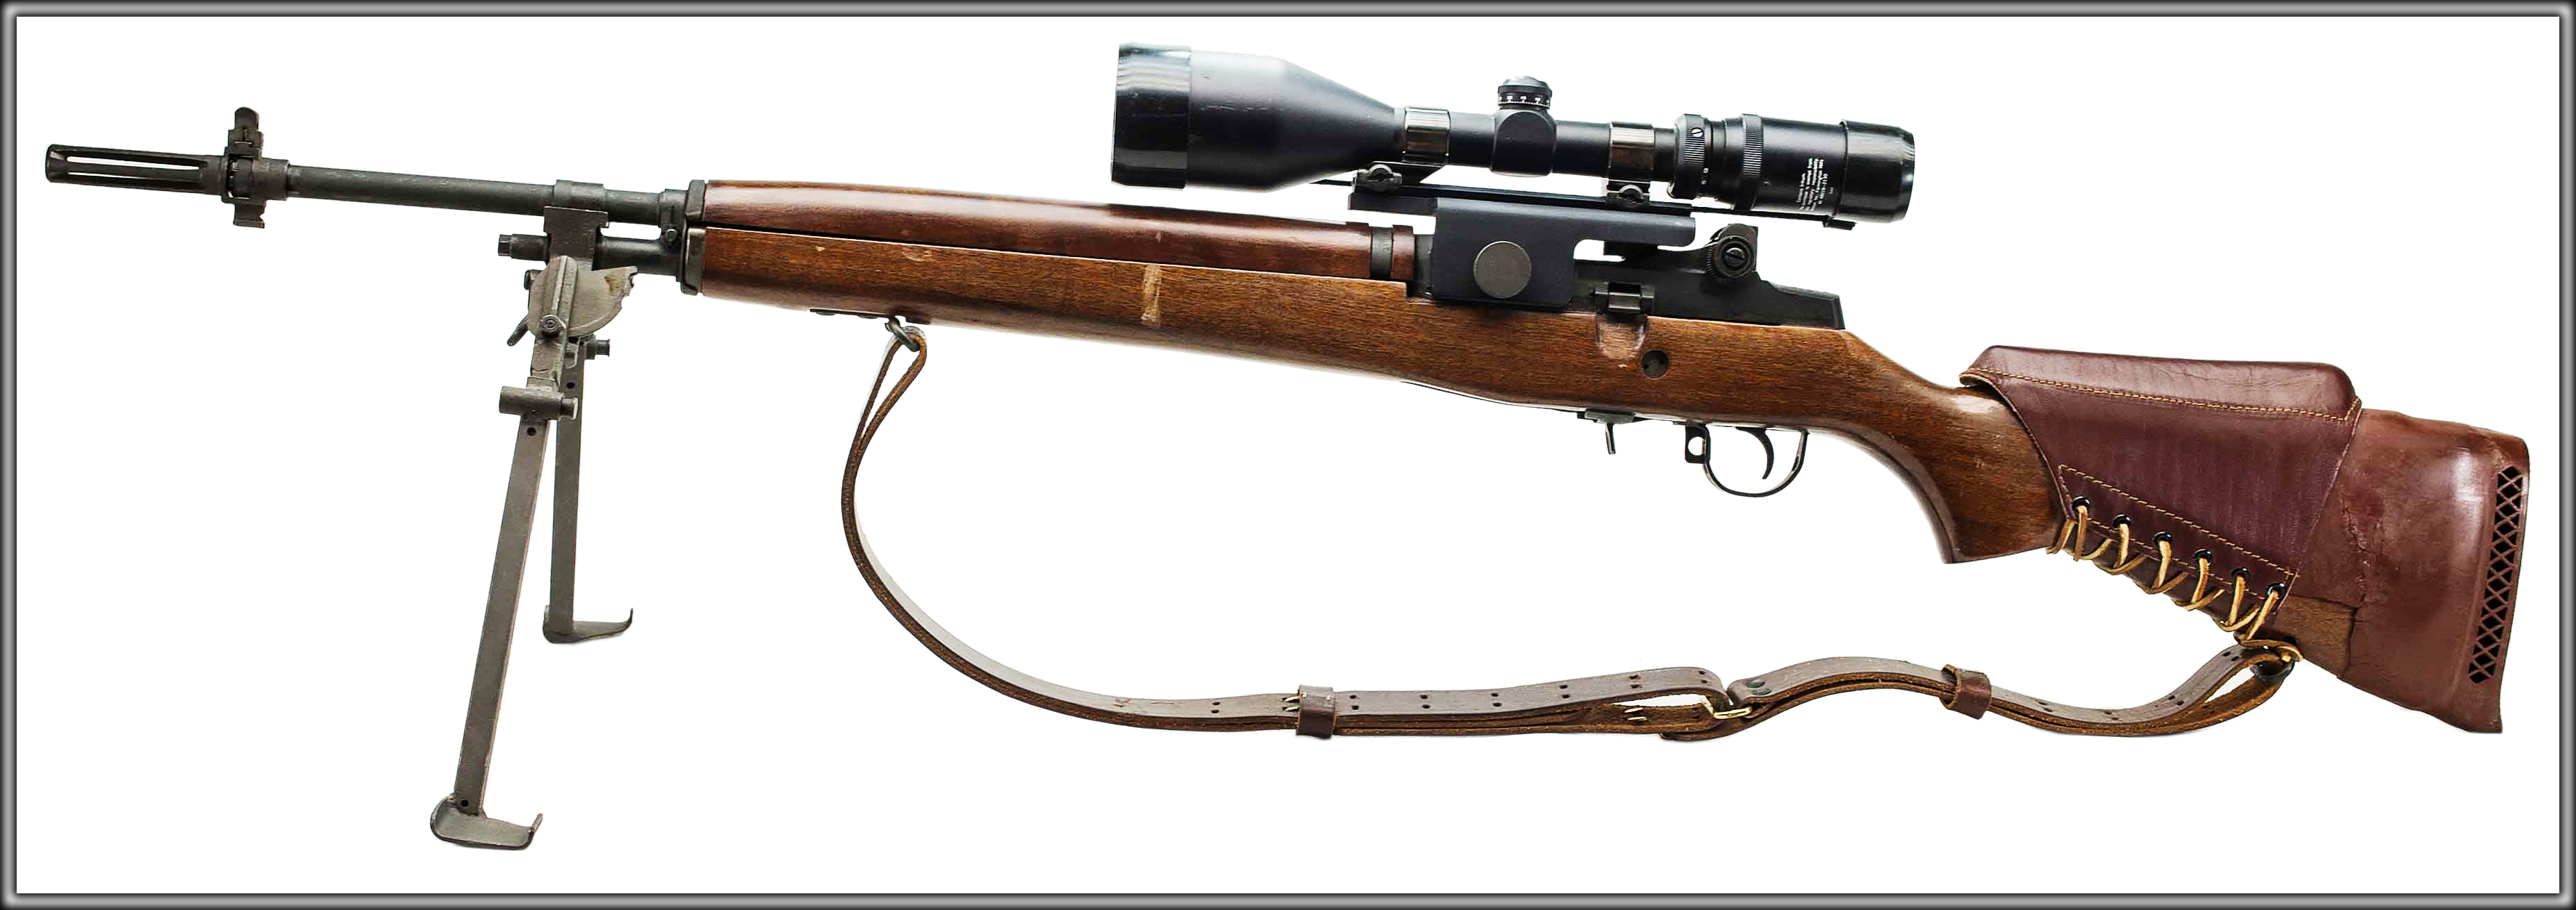 SPRINGFIELD ARMORY M1A [7 62x51 NATO] (Auction ID: 14682602